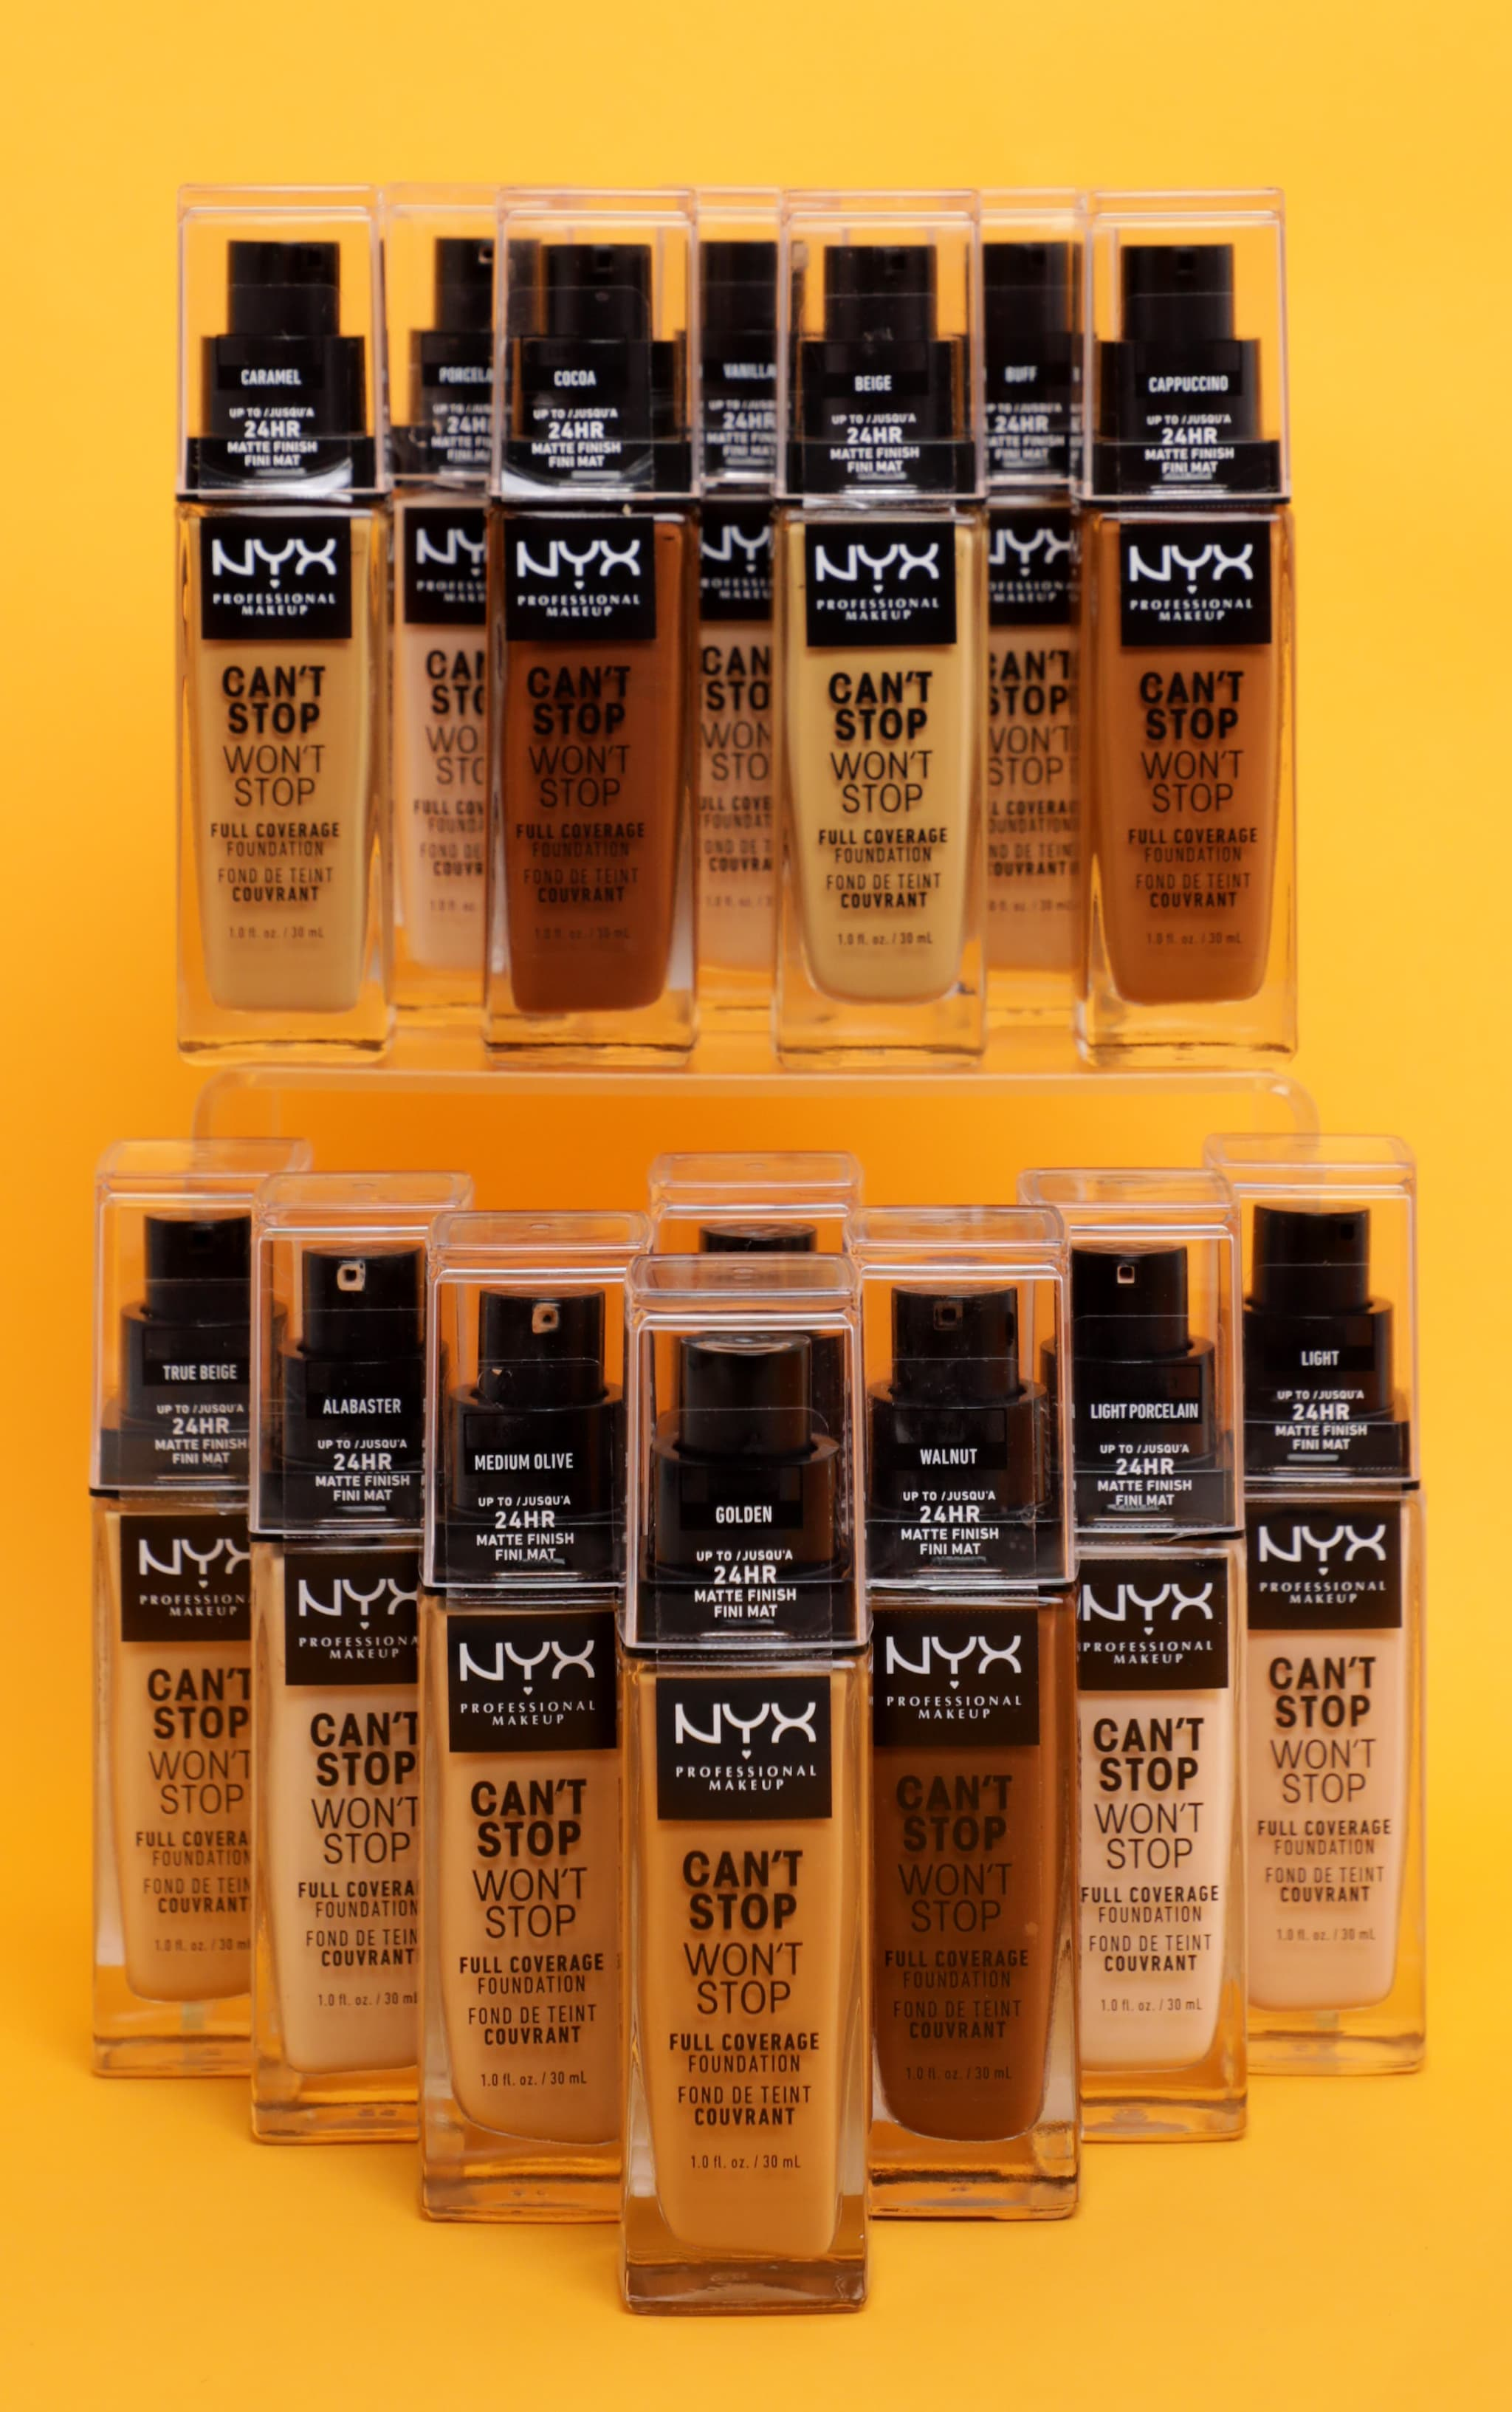 NYX PMU Can't Stop Won't Stop Full Coverage Foundation Alabaster 3